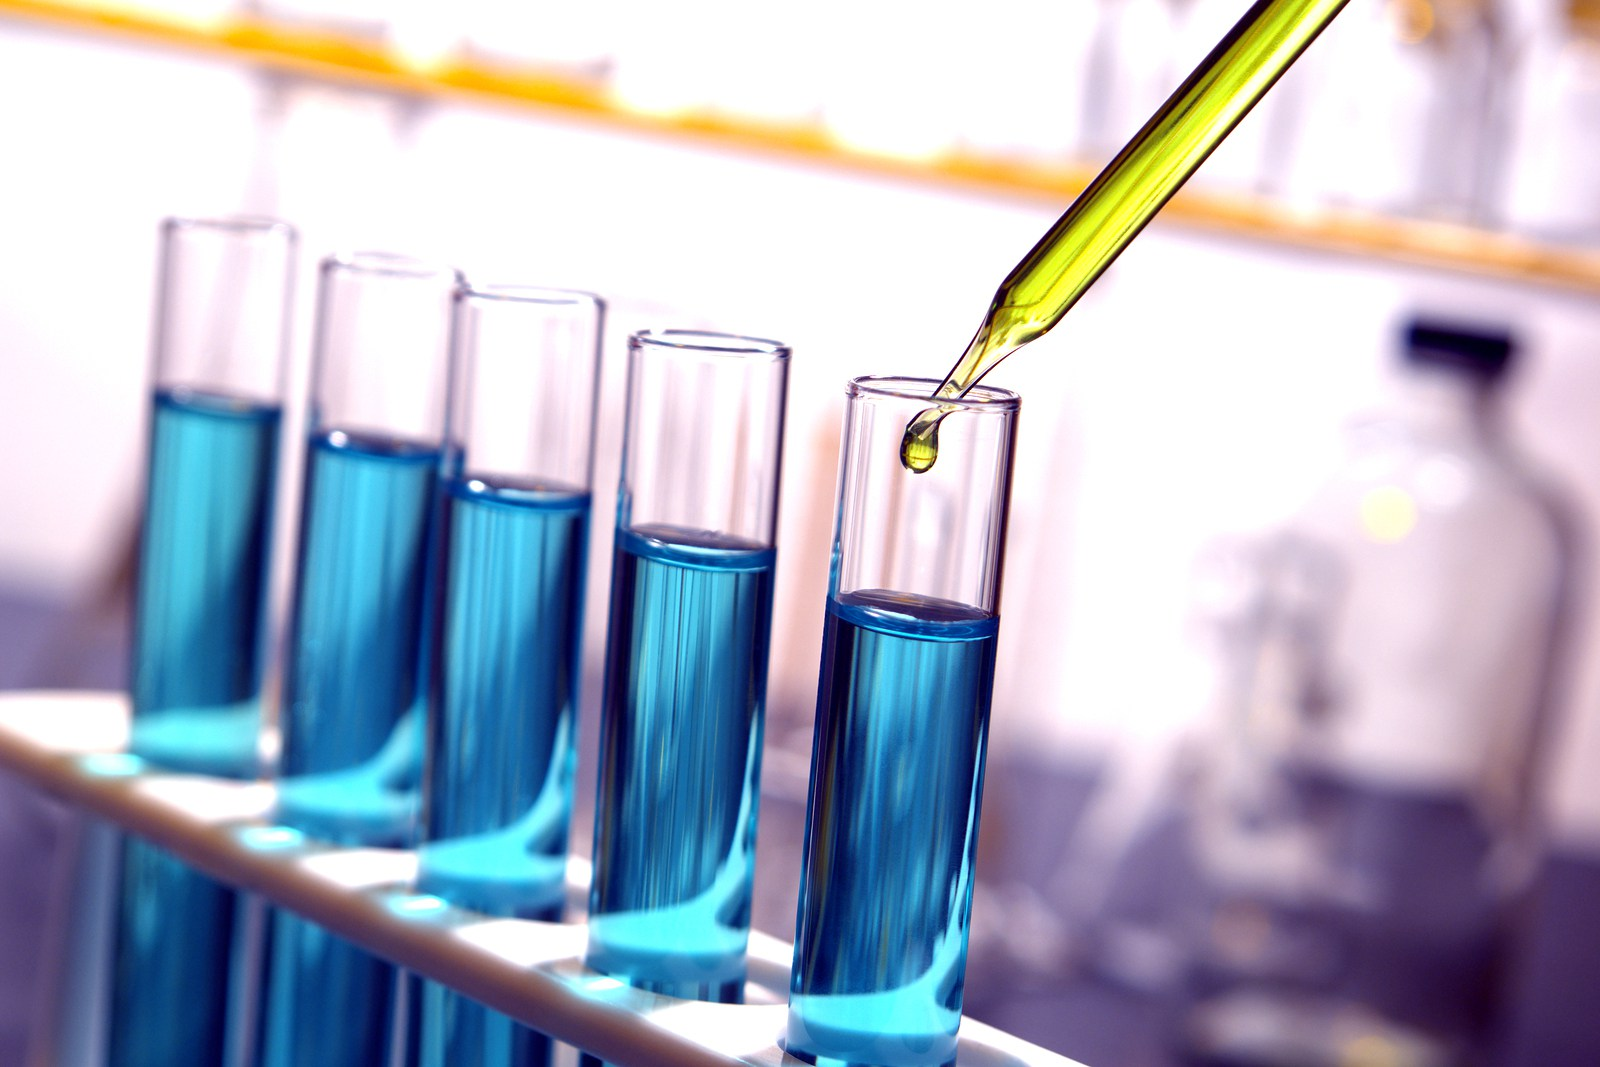 bigstock-Test-Tubes-in-Science-Research-5143772